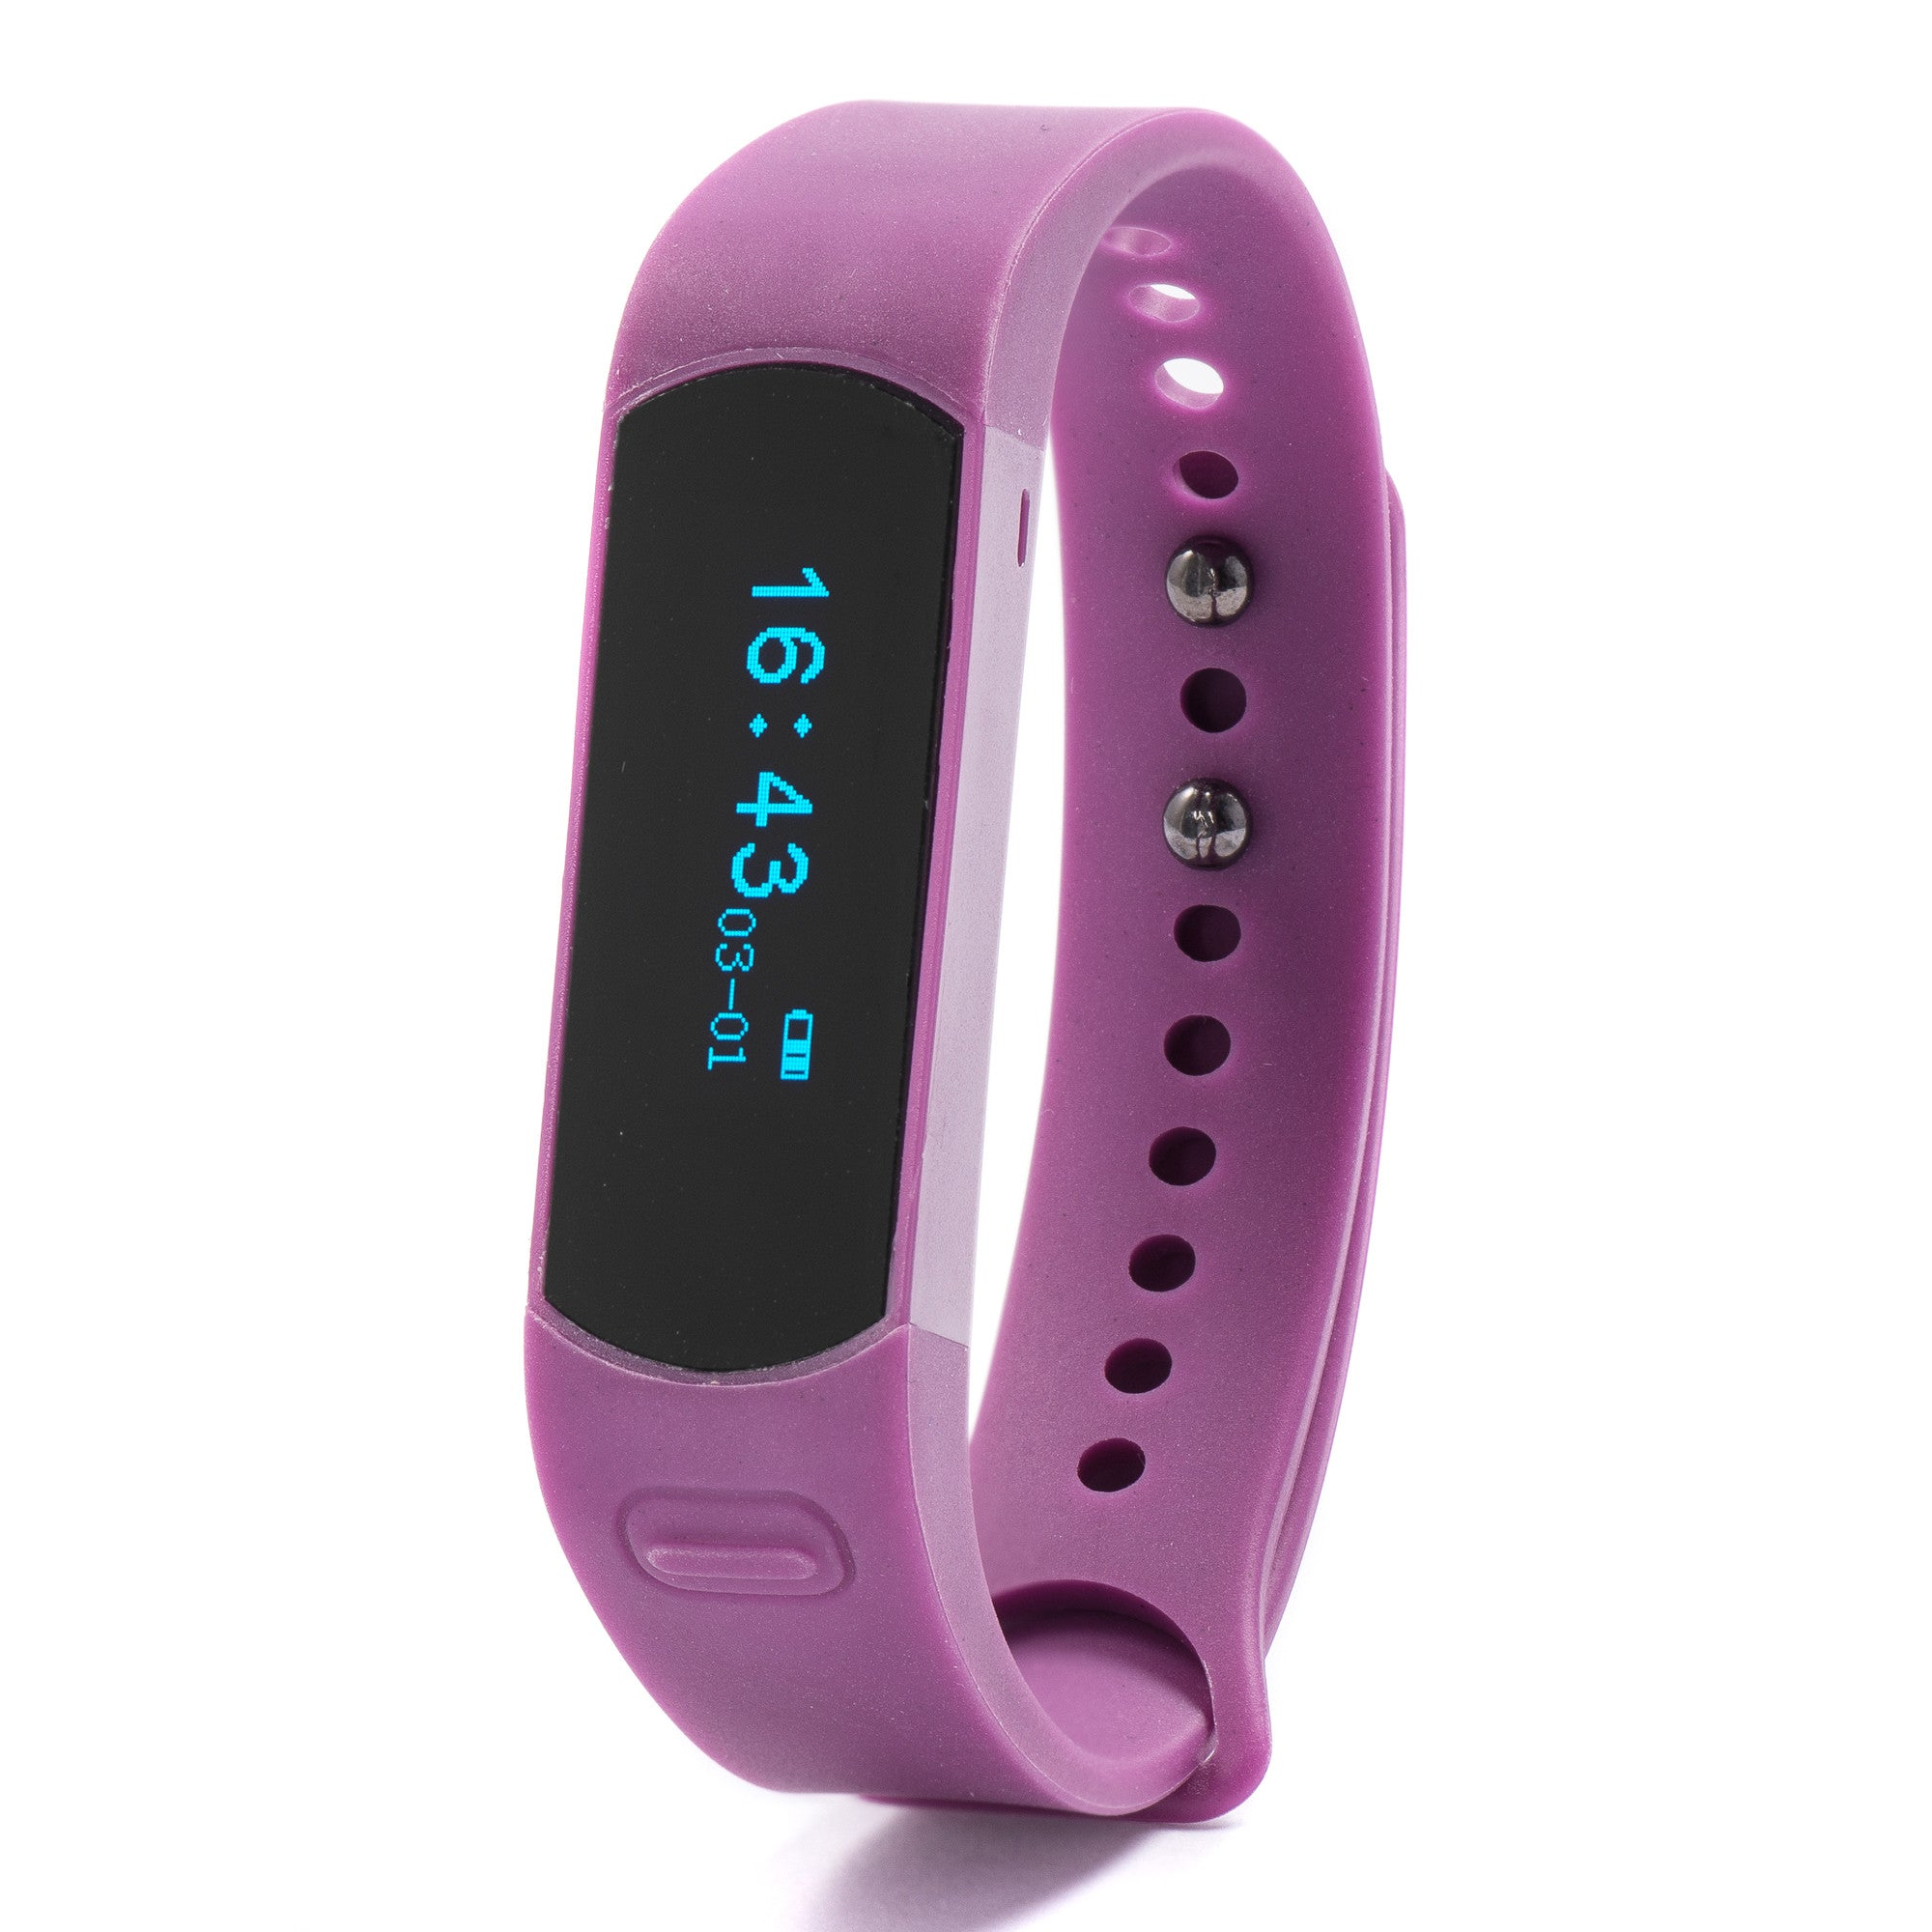 NUBAND EVOLVE Multi Sport Wireless Activity and Sleep Tracker (Plum)